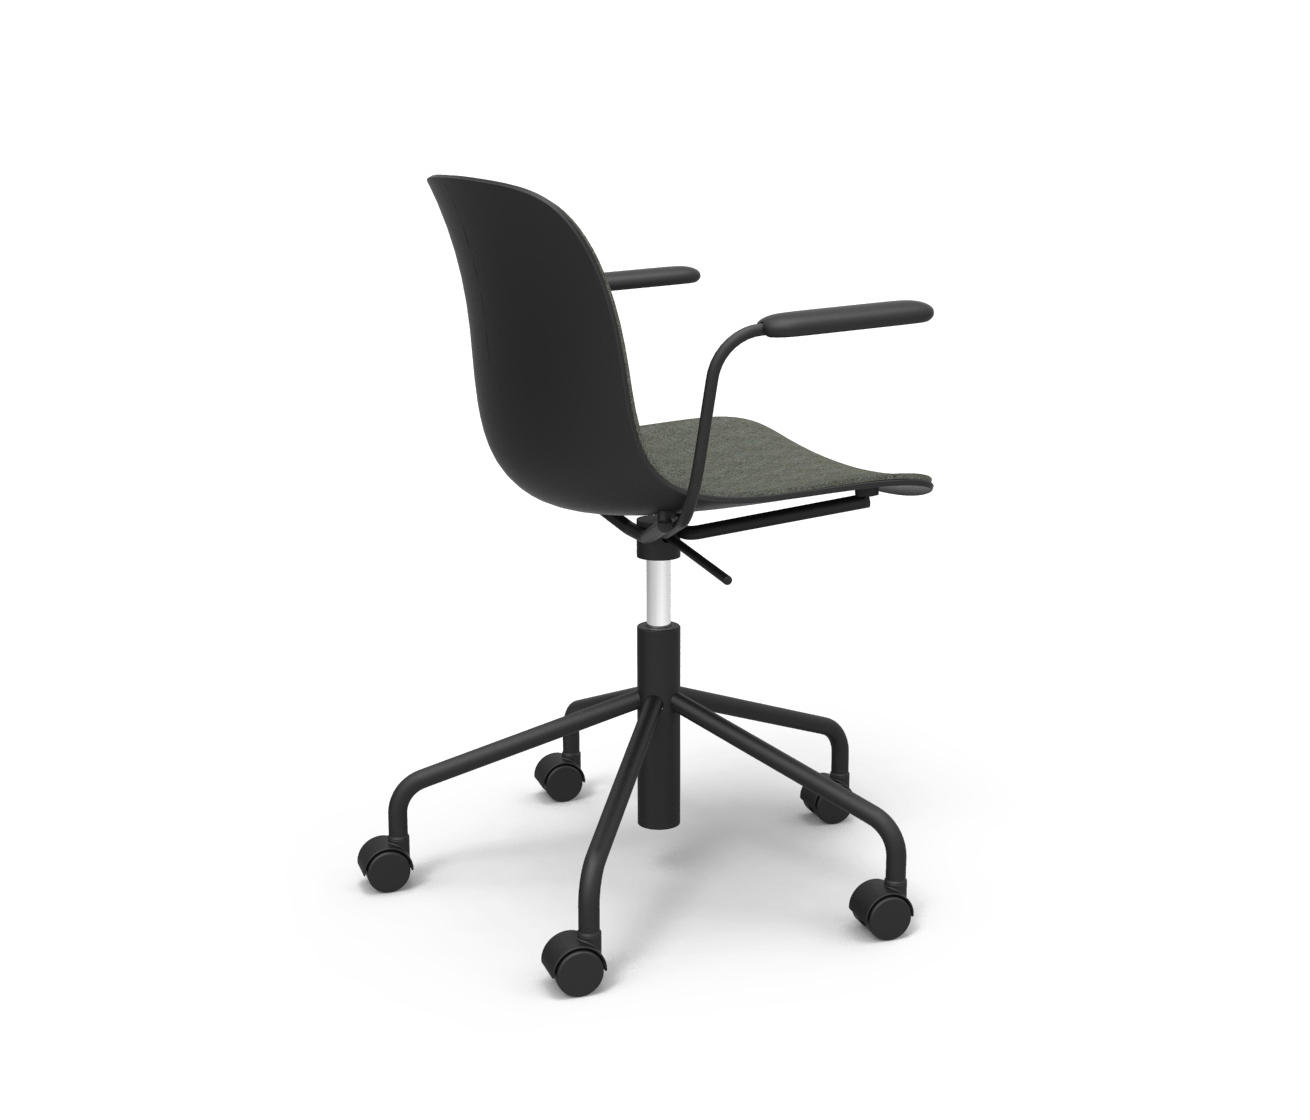 Chair On Wheels Troy Swivel Chair On 5 Wheels Office Chairs From Magis